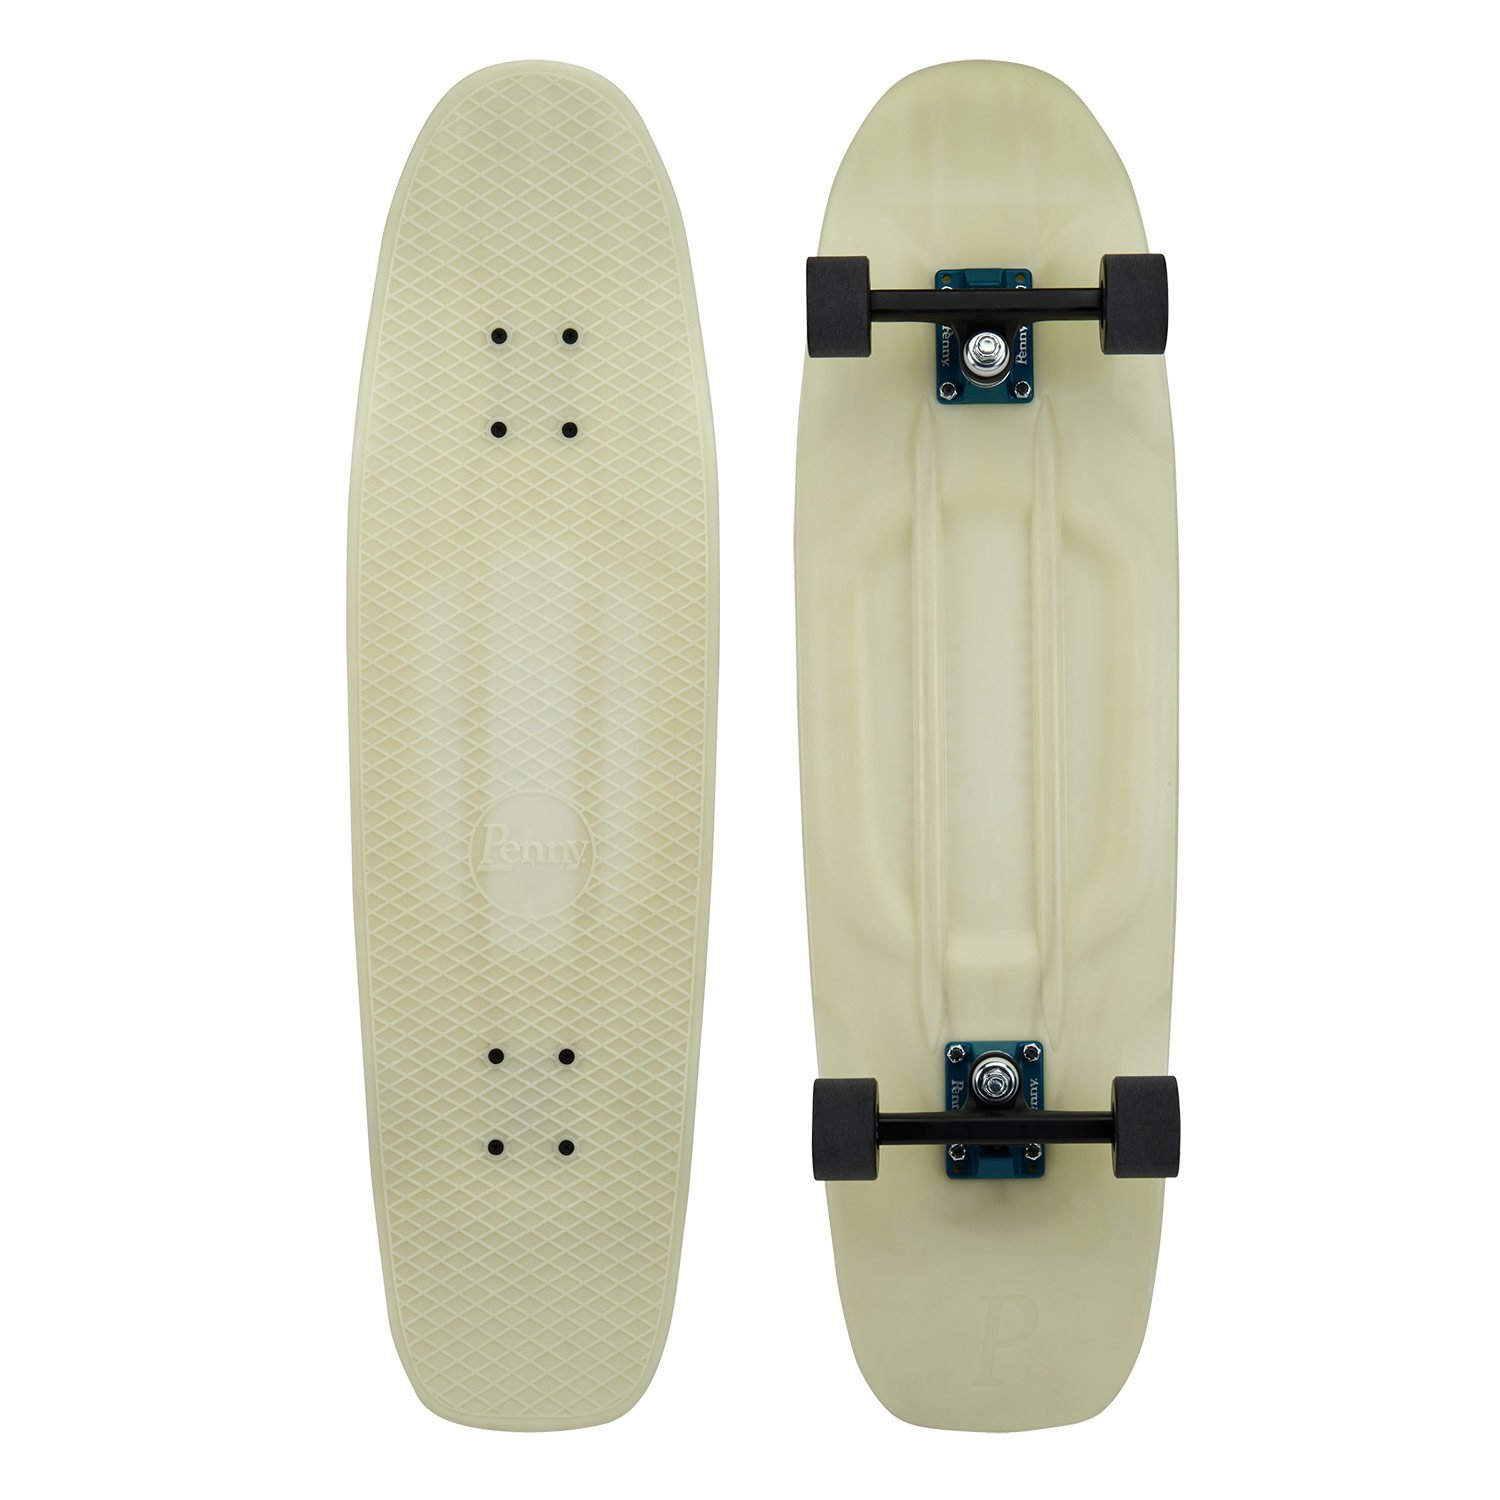 Penny Classic Complete Skateboard - Midnight Glow 32''